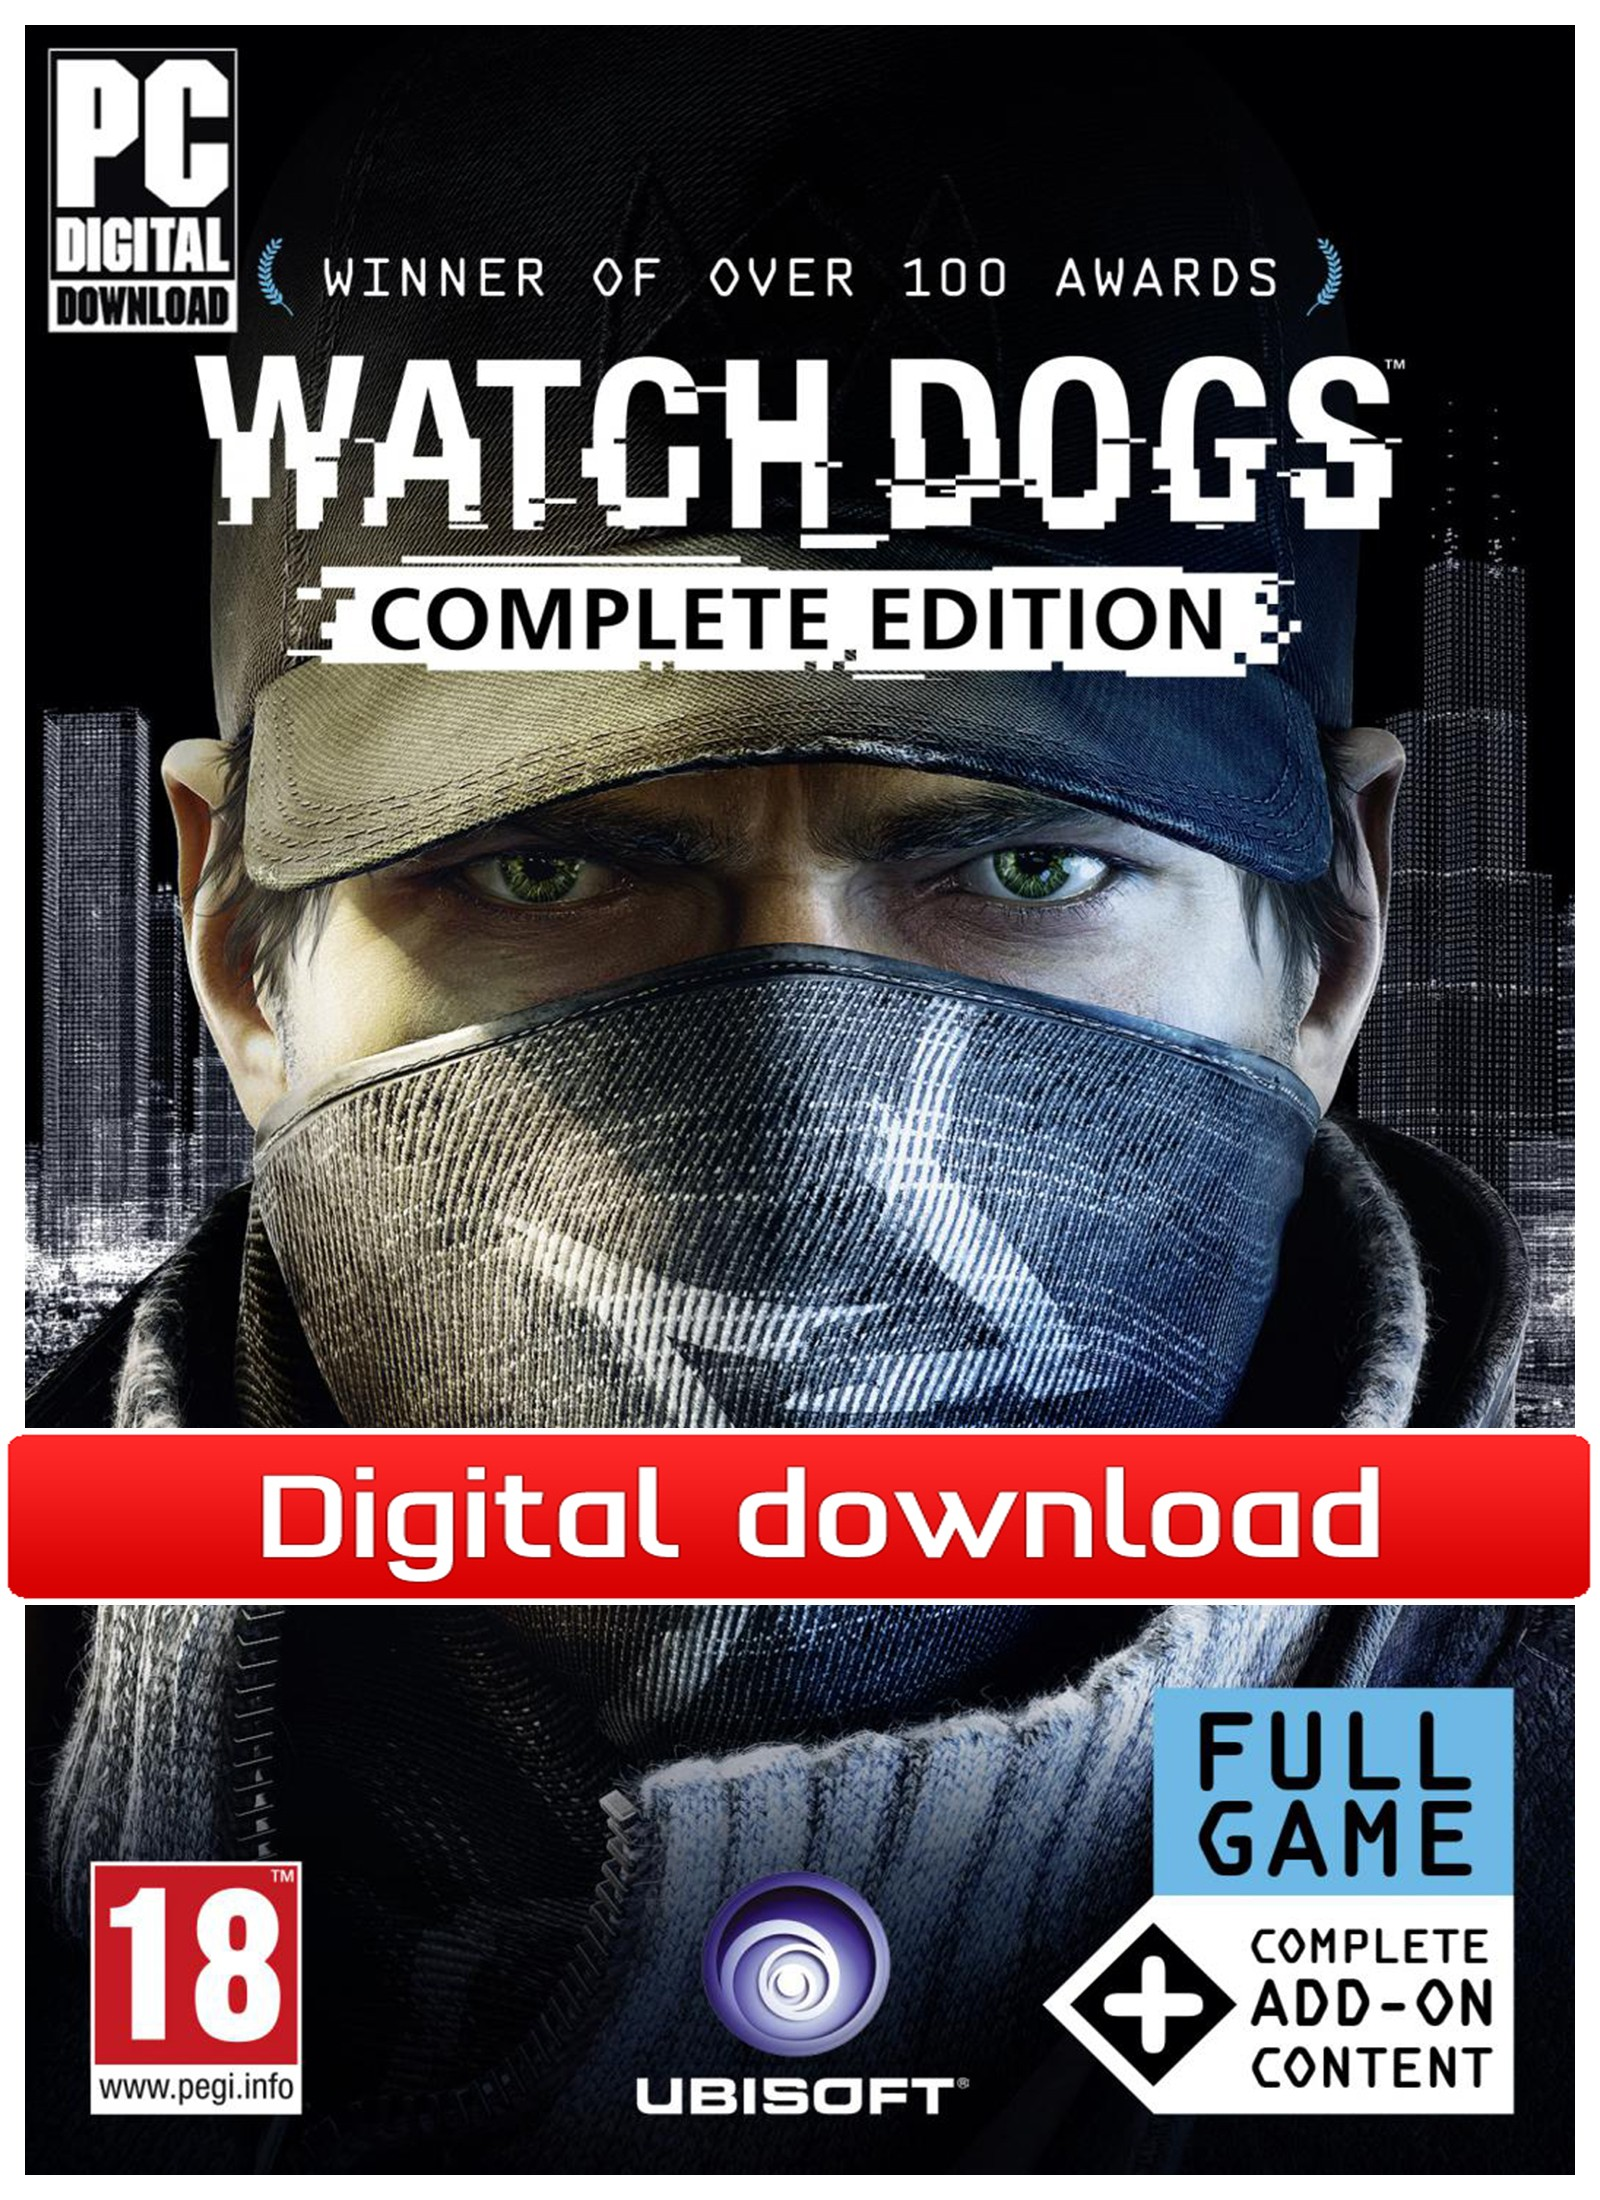 37927 : Watch Dogs Complete Edition (PC nedlastning)